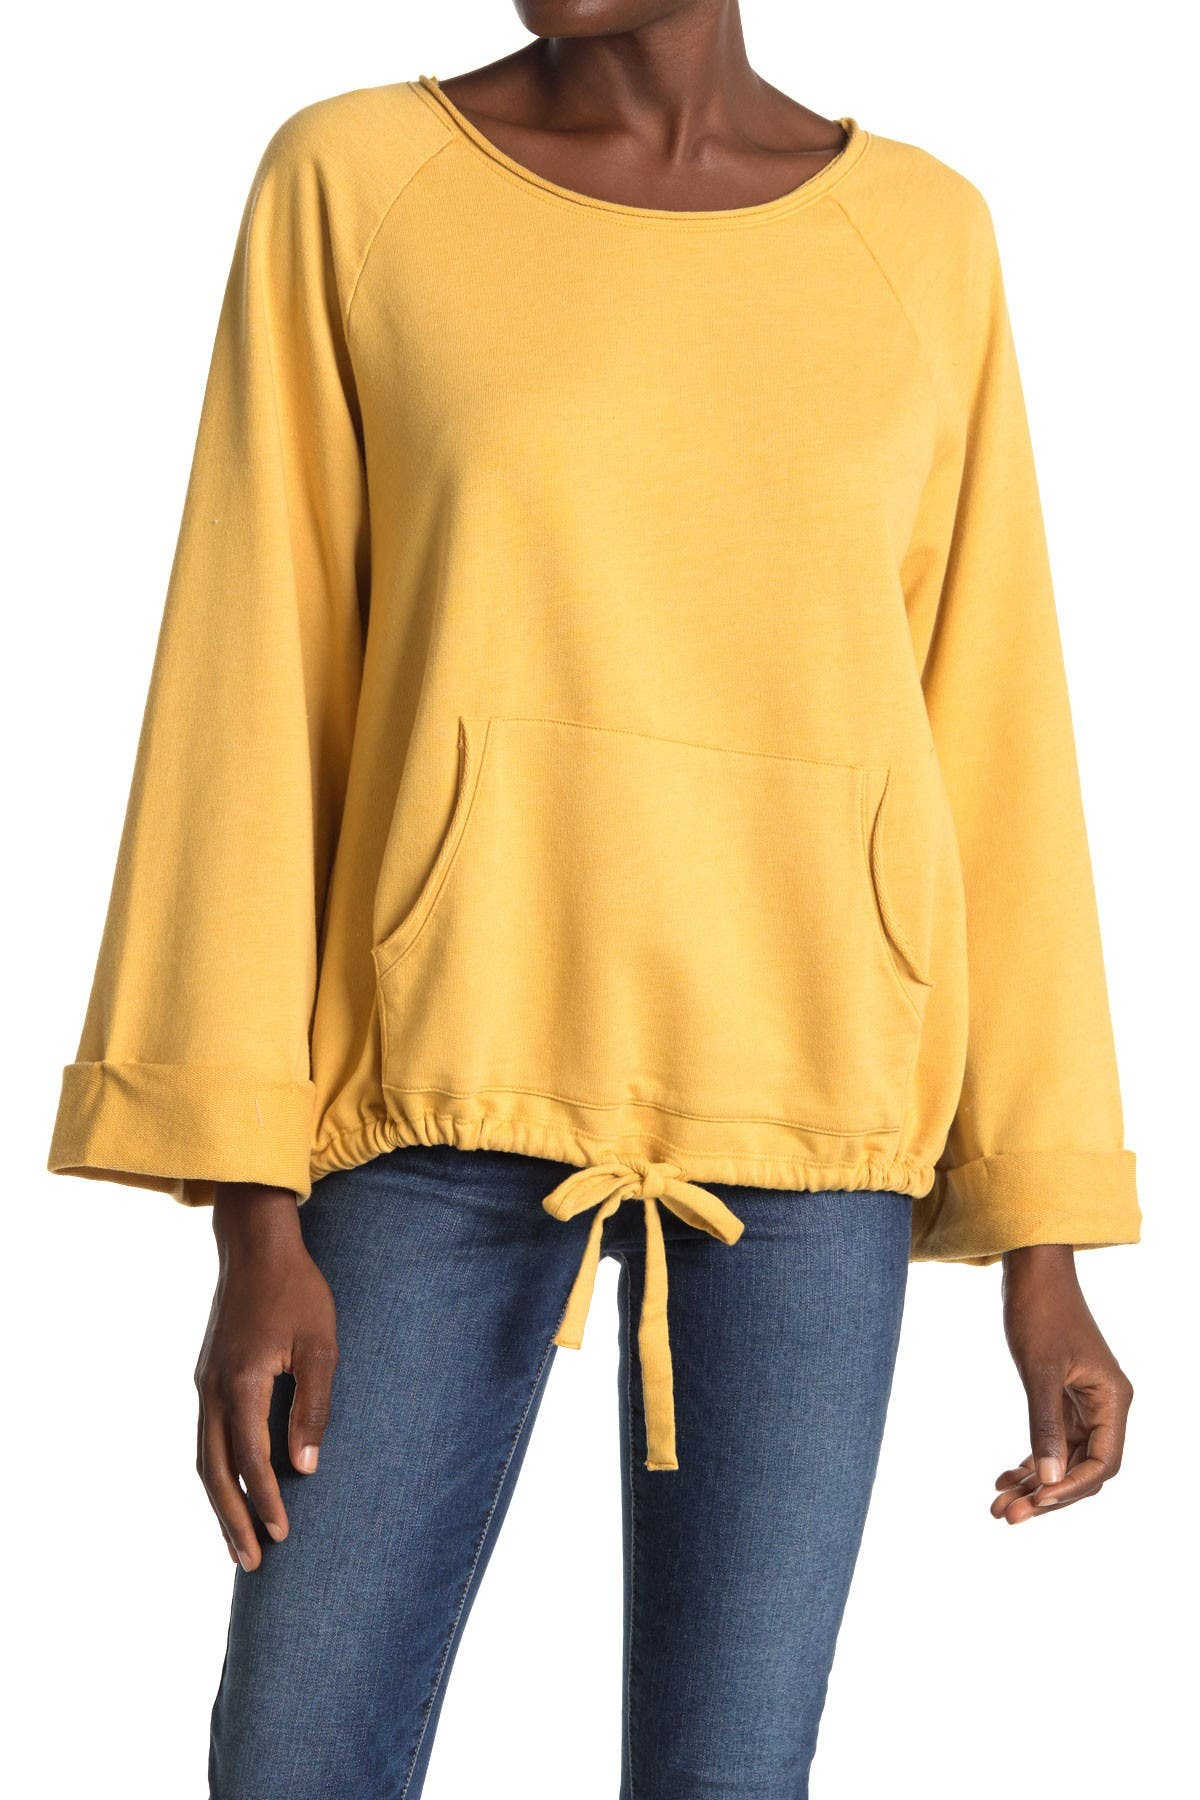 PST by Project Social T The Reason Sweatshirt